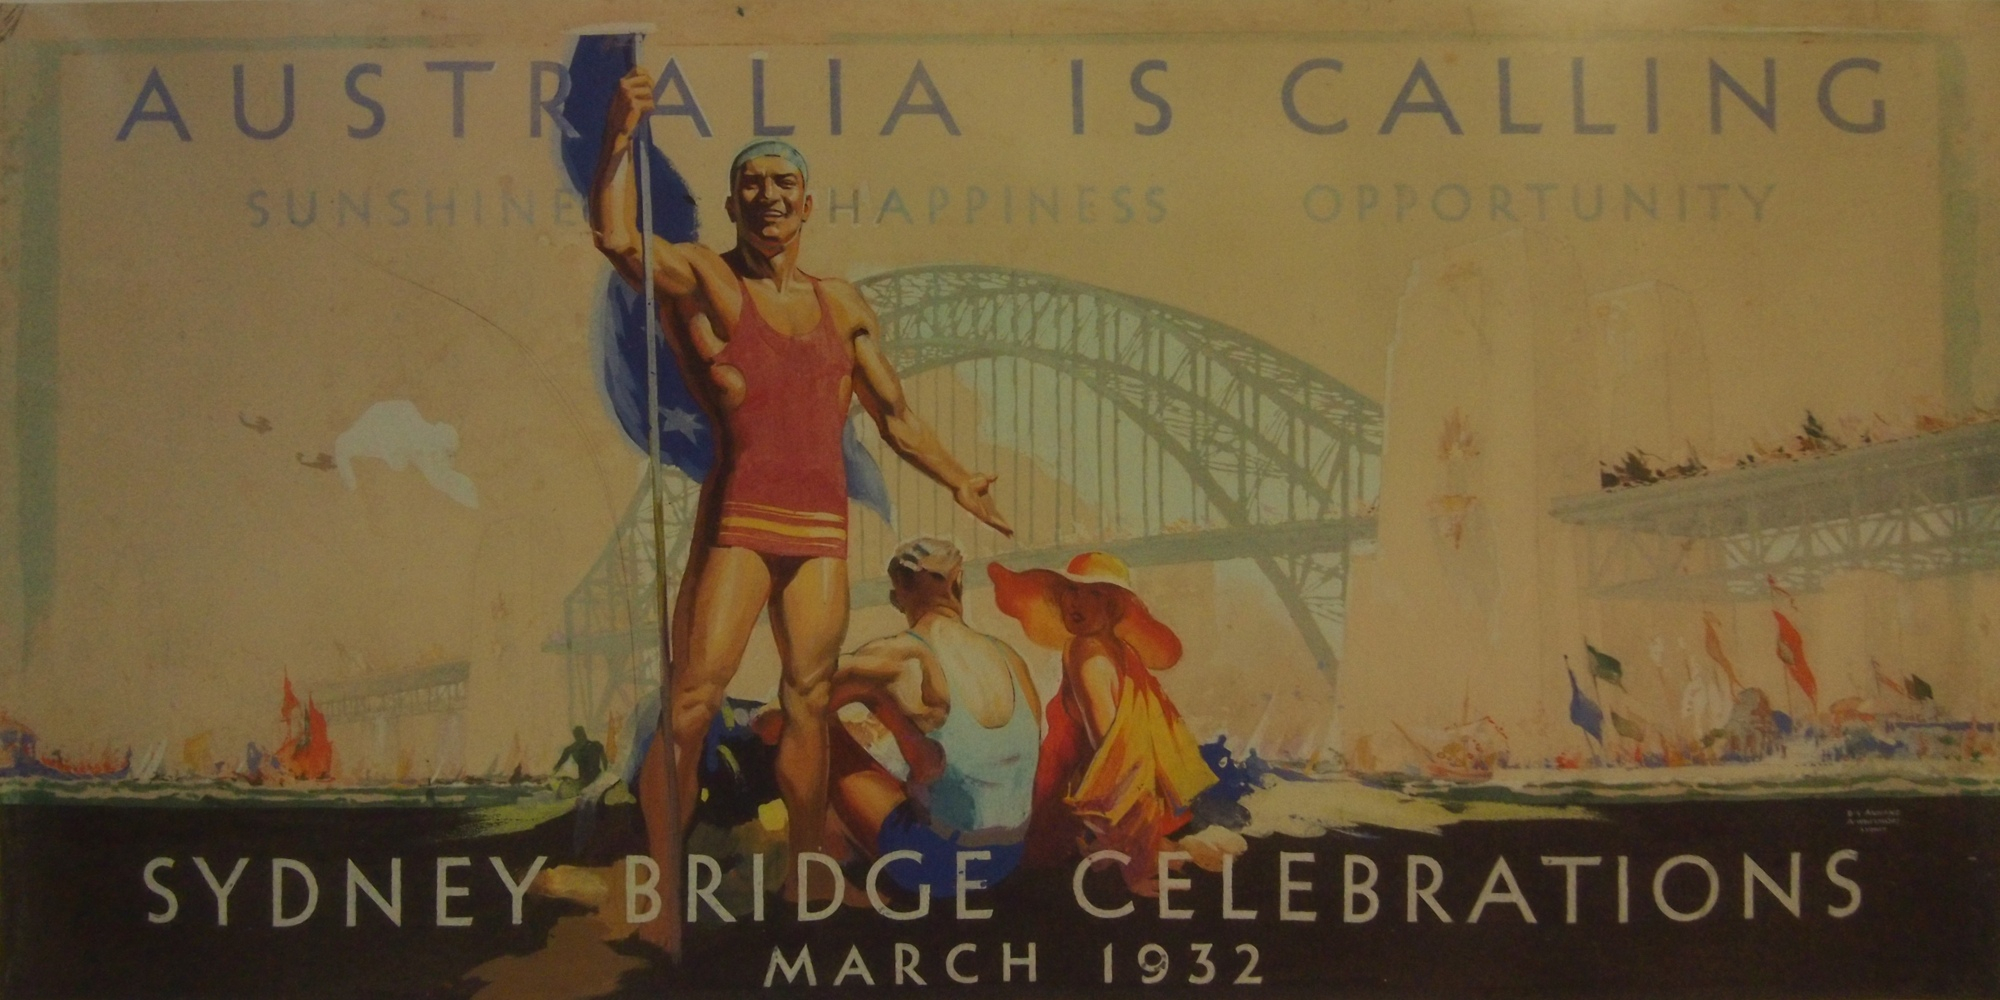 """vintage poster from the Sydney Bridge Celebration 1932 showing a muscular man in a bathing suit with a flag, other people in beachwear, with the Sydney Harbour Bridge in the background and the slogal """"Australia is calling: sunshine, happiness, opportunity"""","""